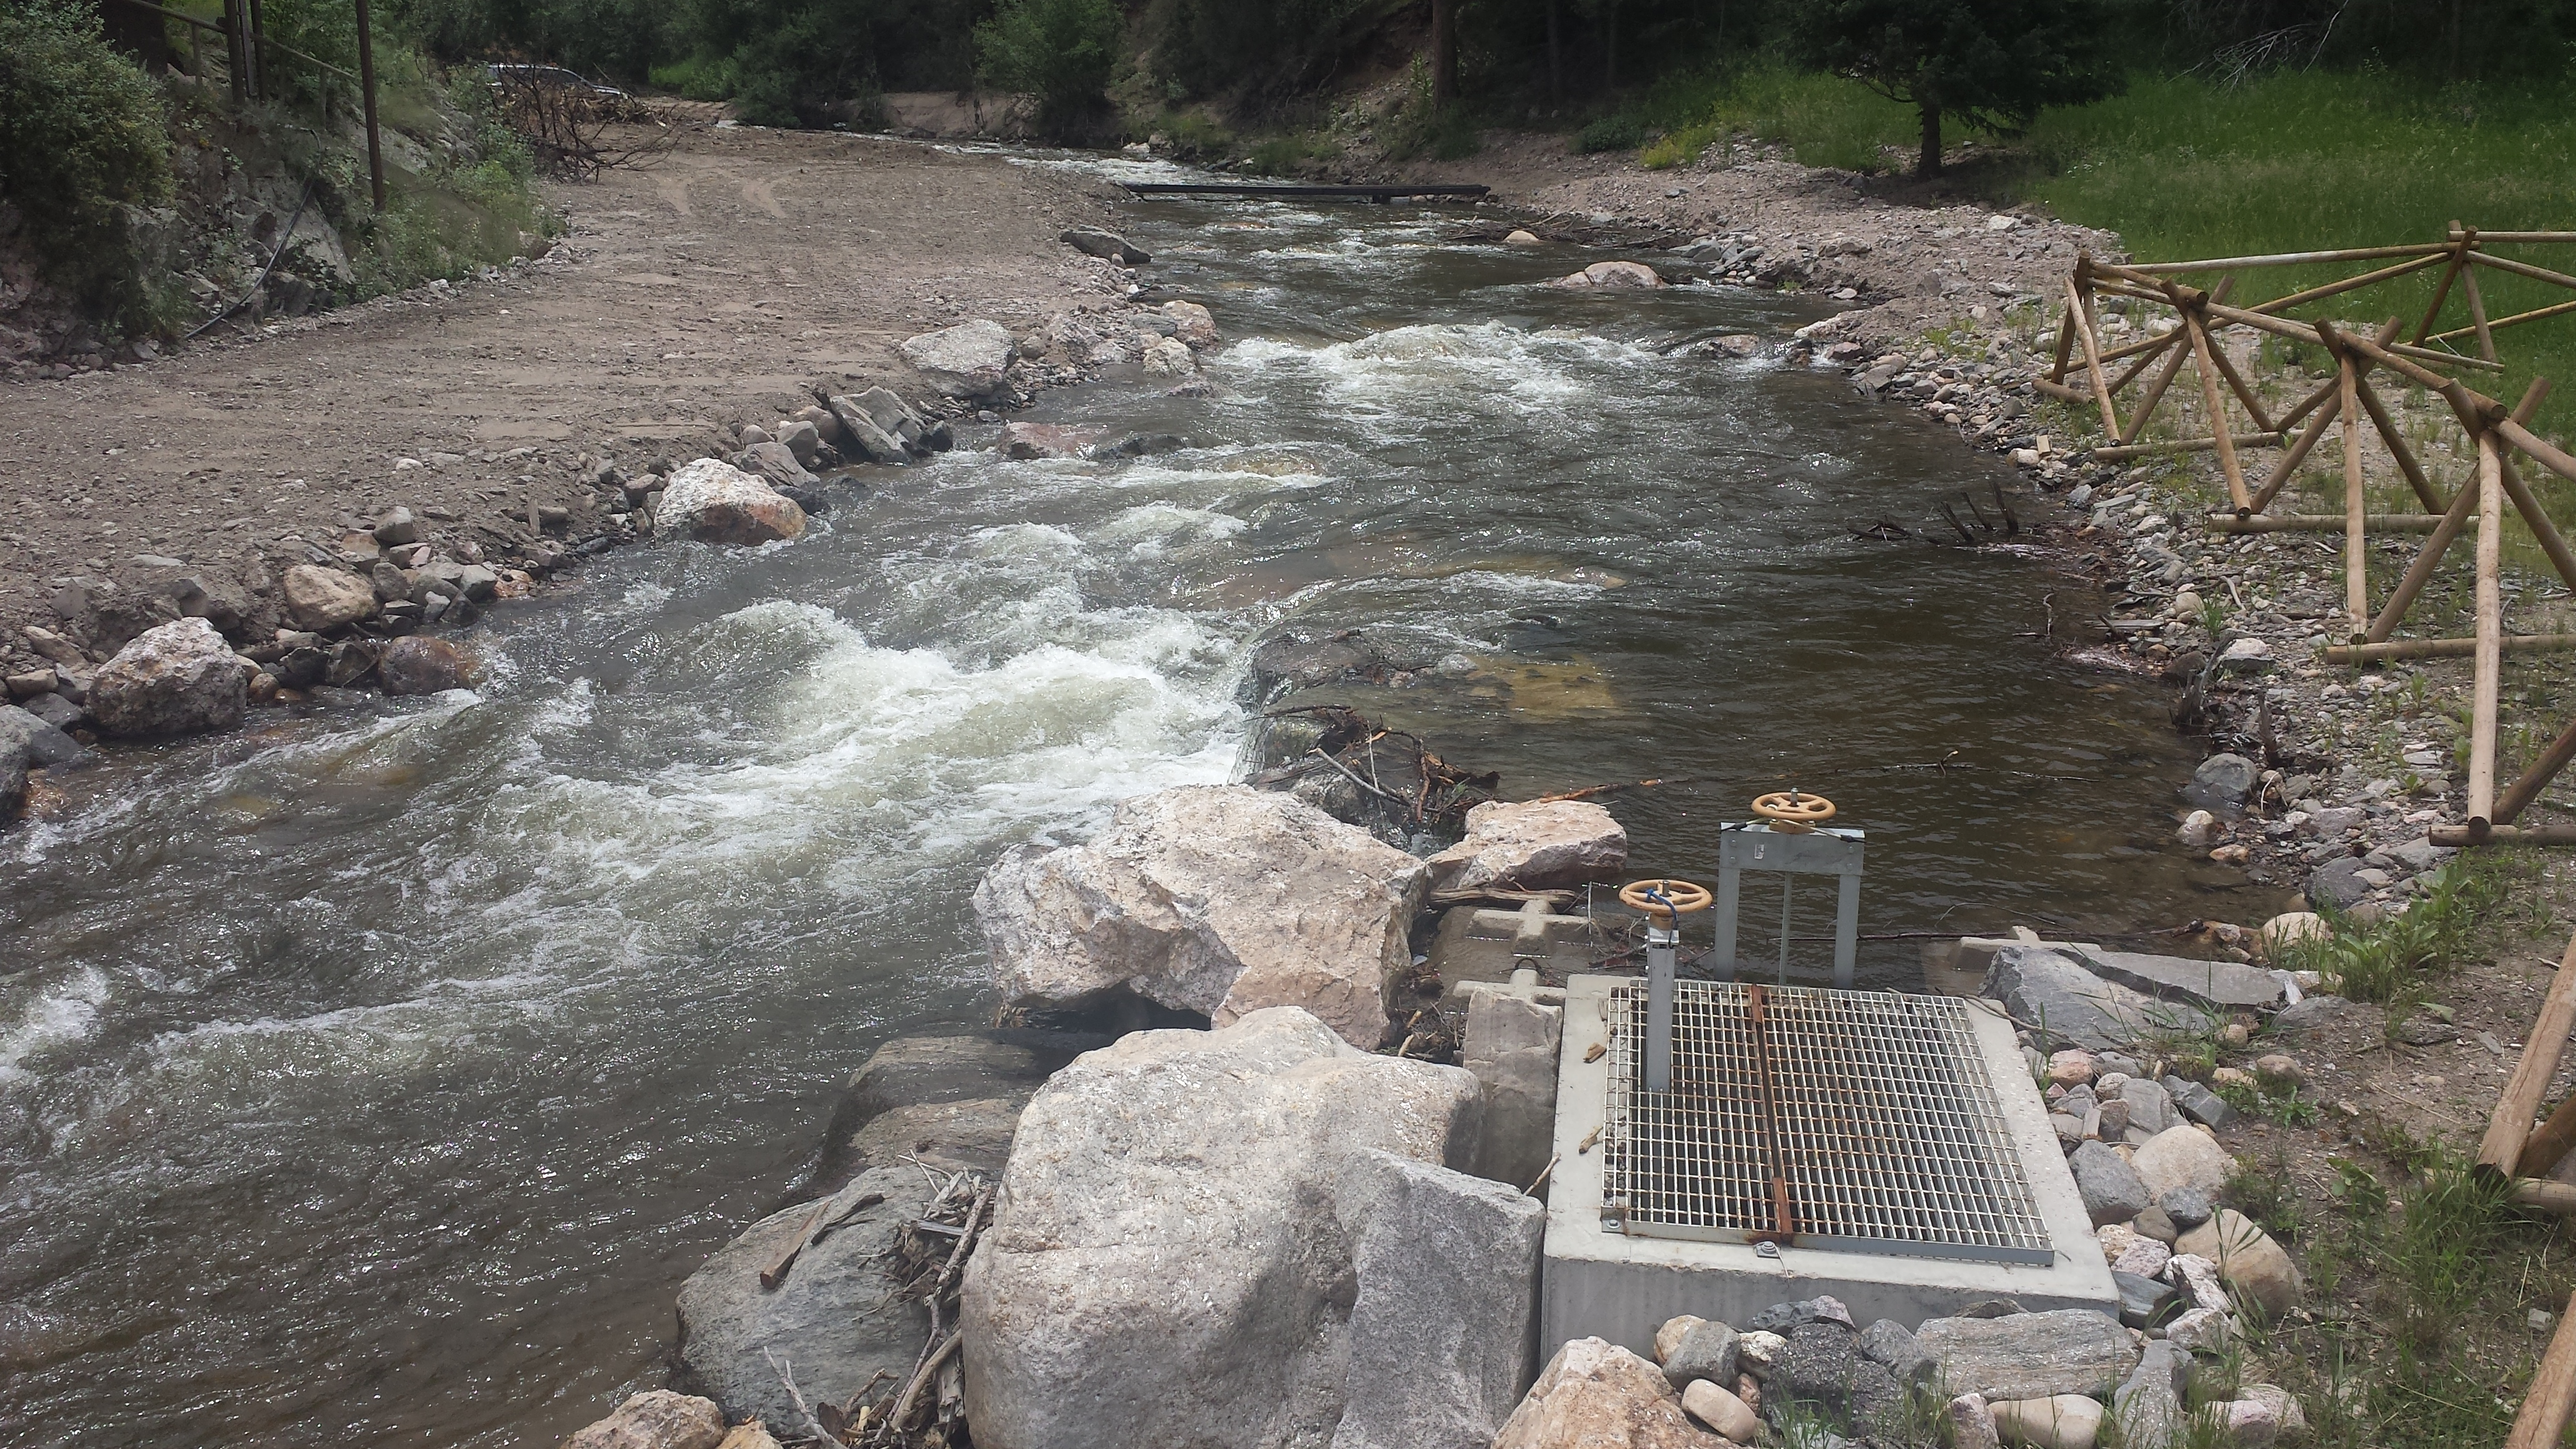 Low head boulder structures for fish-friendly irrigation diversions